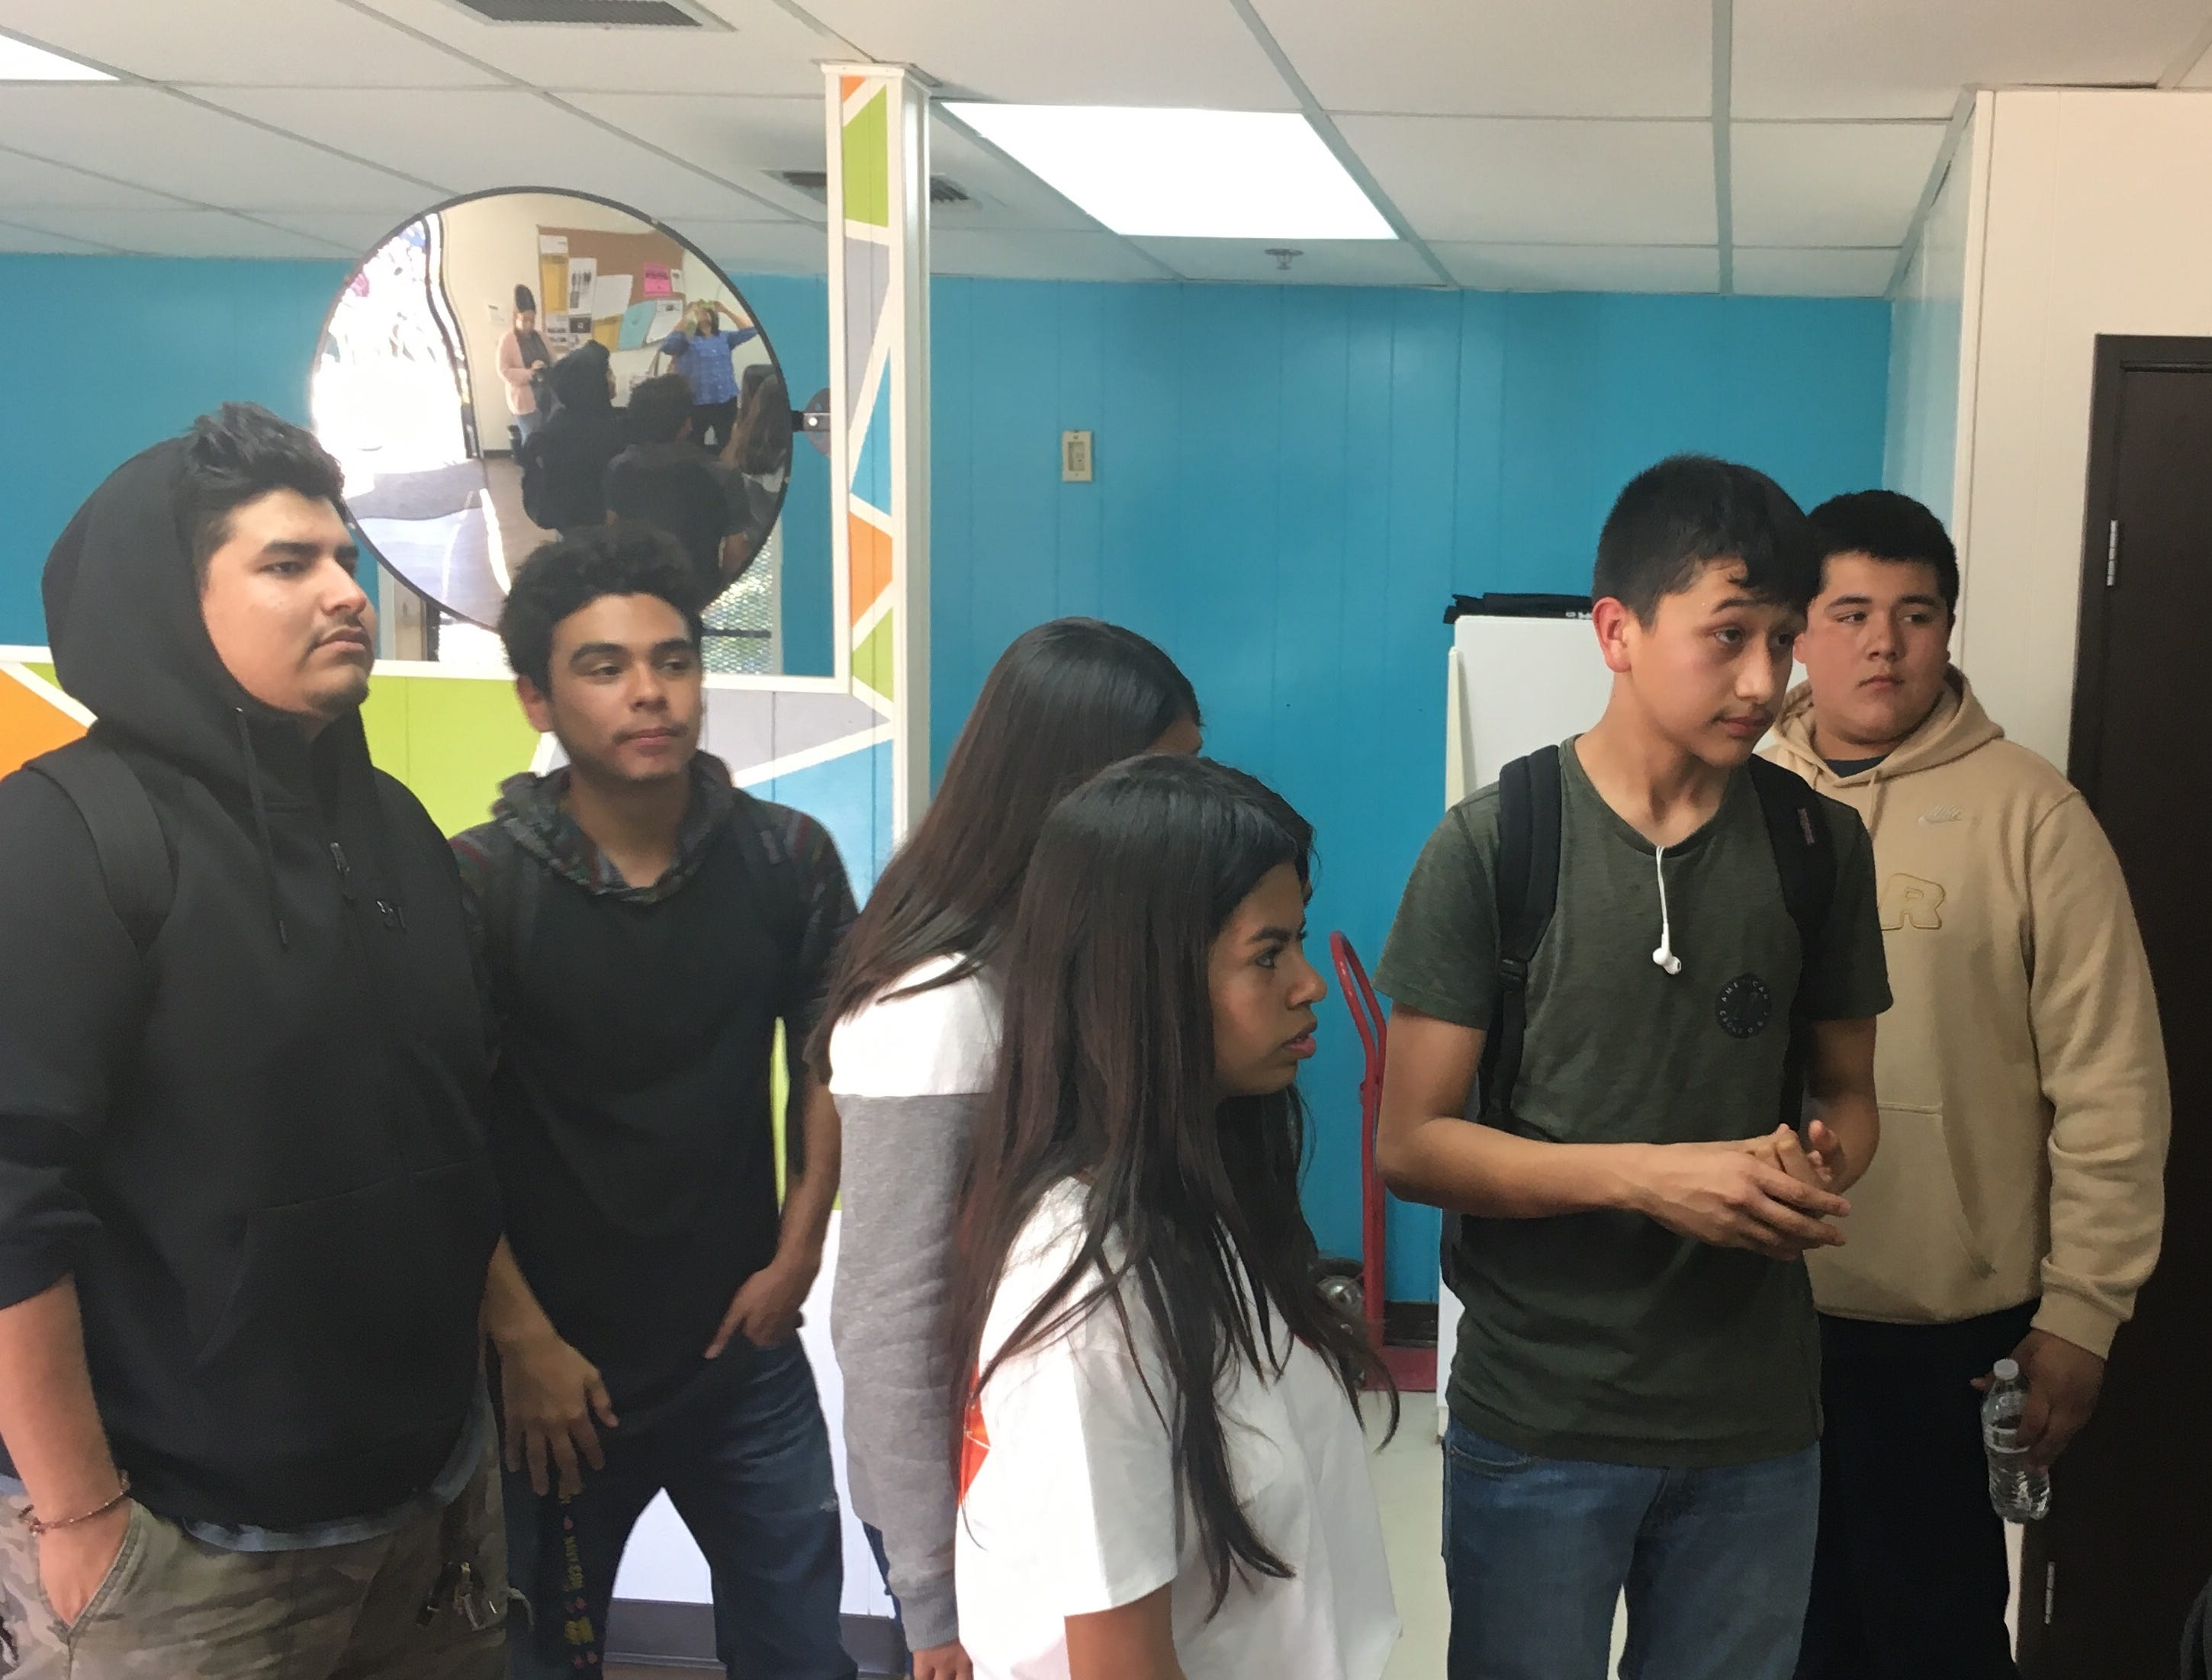 Students tour Santa Paula's new youth center, which has a computer/homework room, a game room, meeting room, lounge area and kitchen.